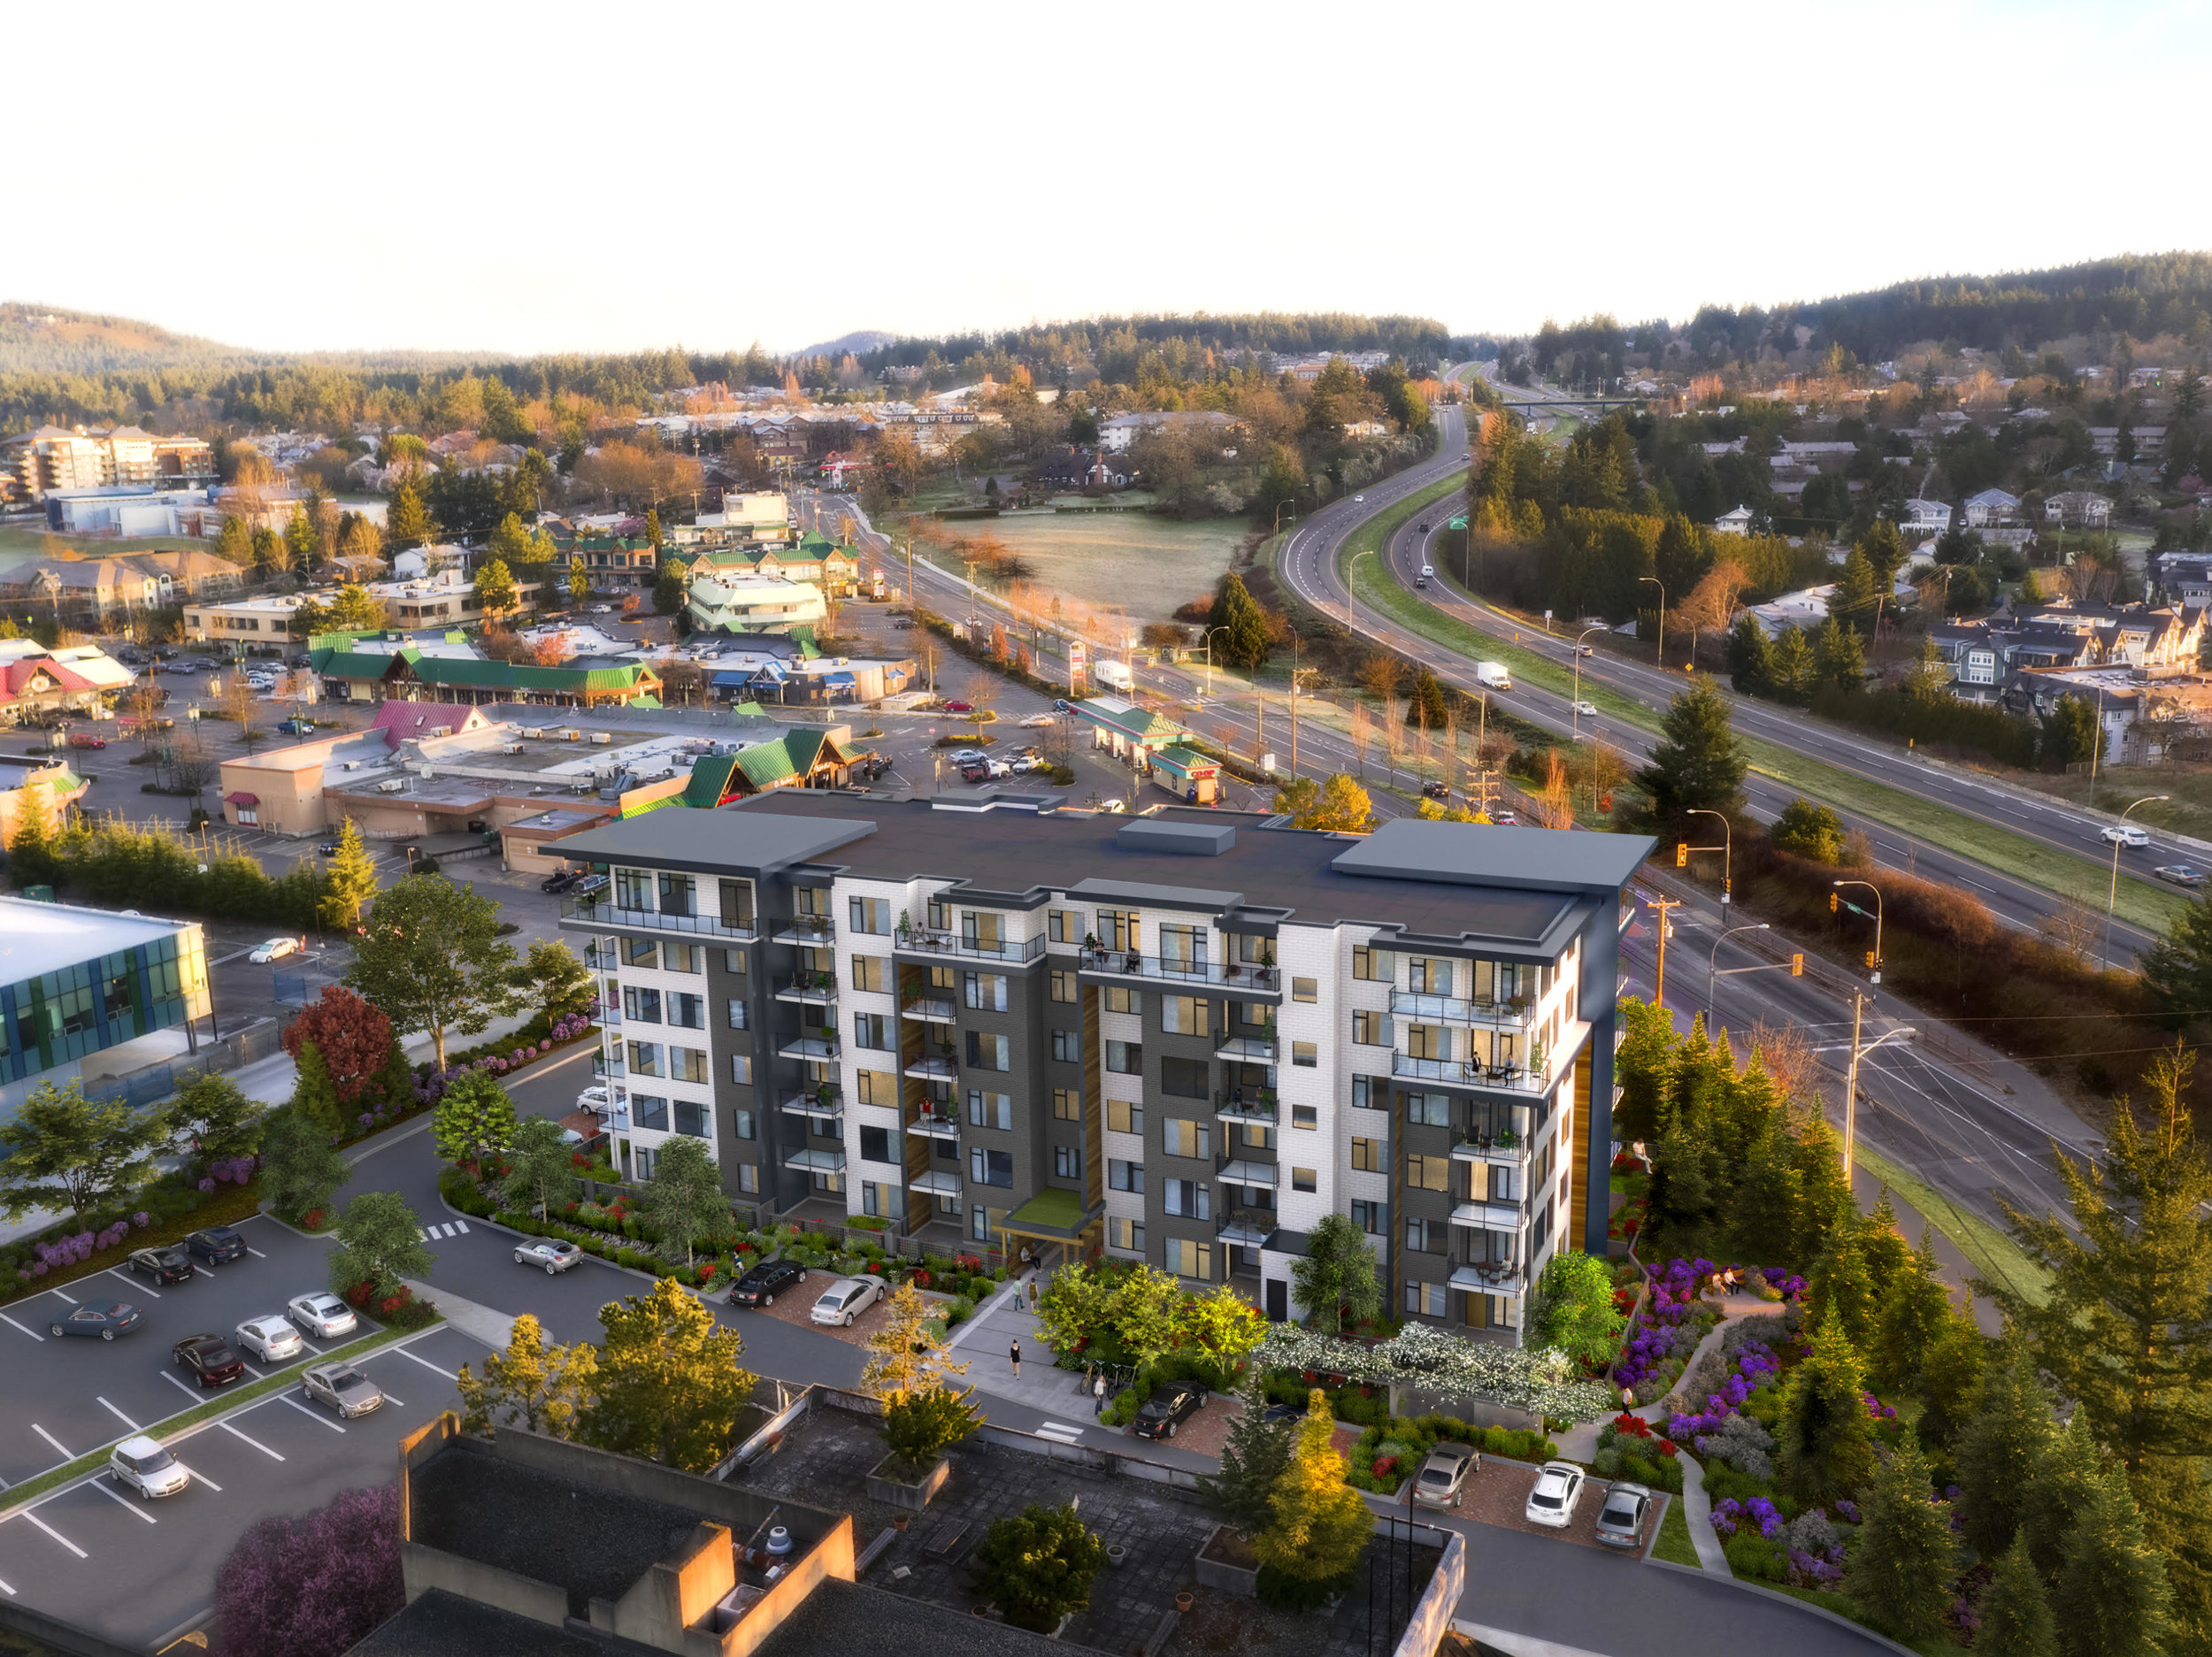 The Radius  Residences Victoria, BC 2016